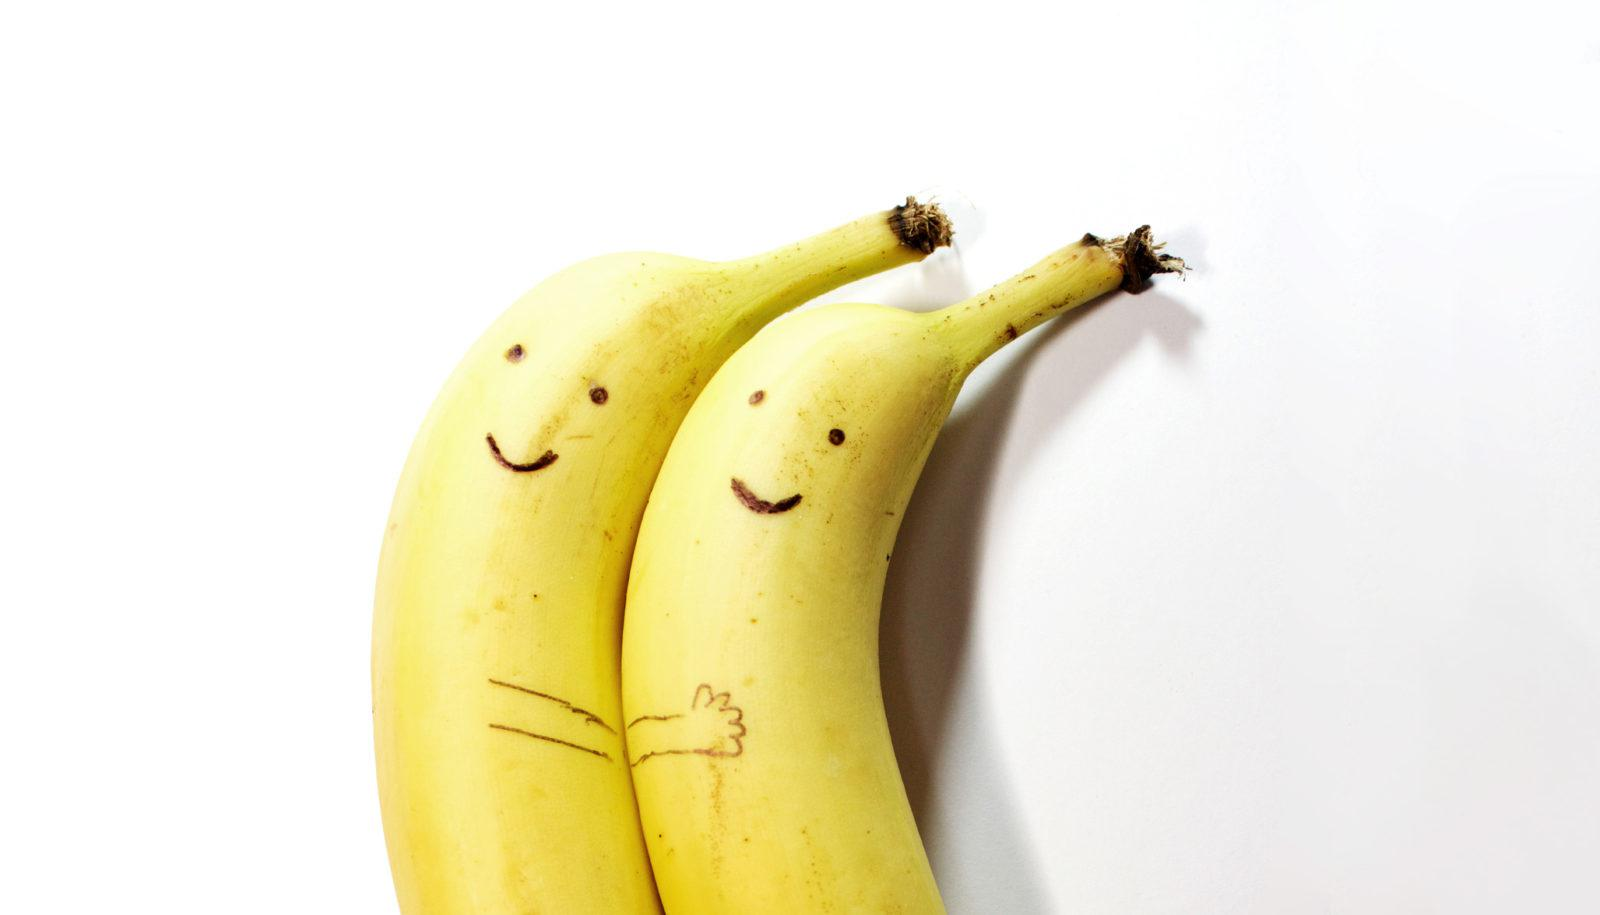 pair of spooning bananas with nice faces